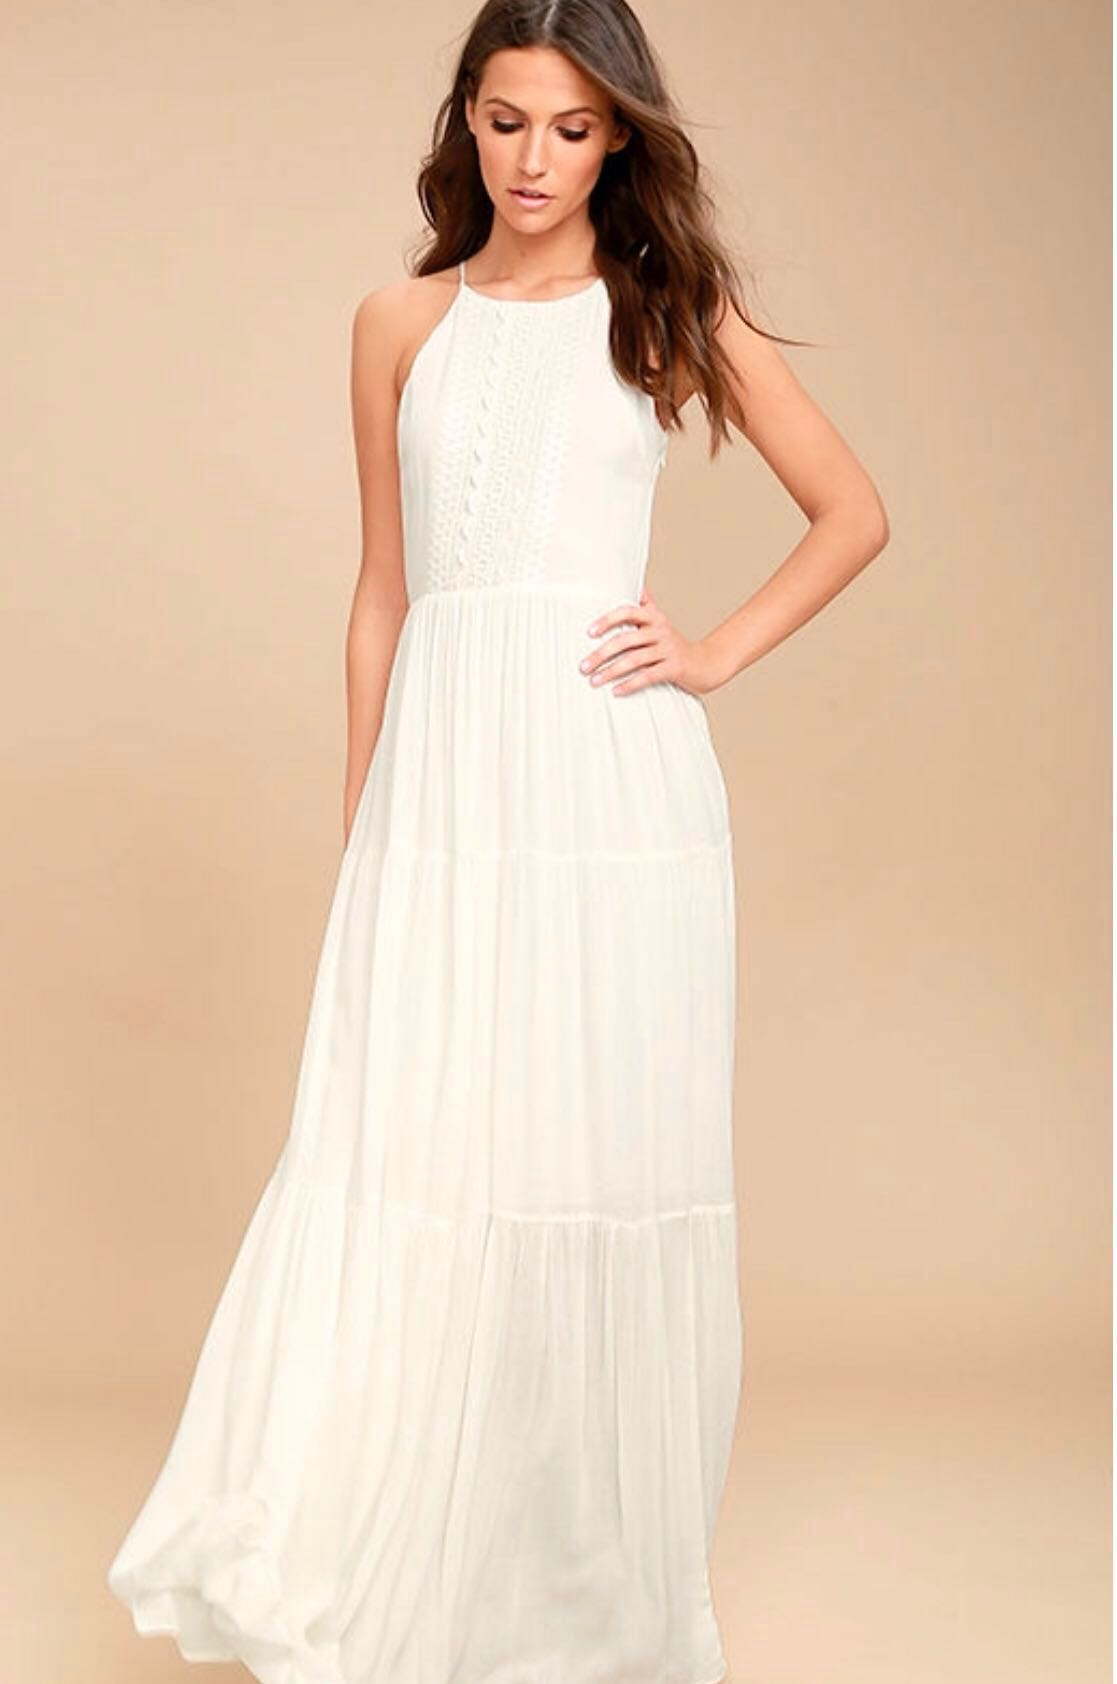 18624b9aa56 Lulu s For Life White Embroidered Maxi Dress XS